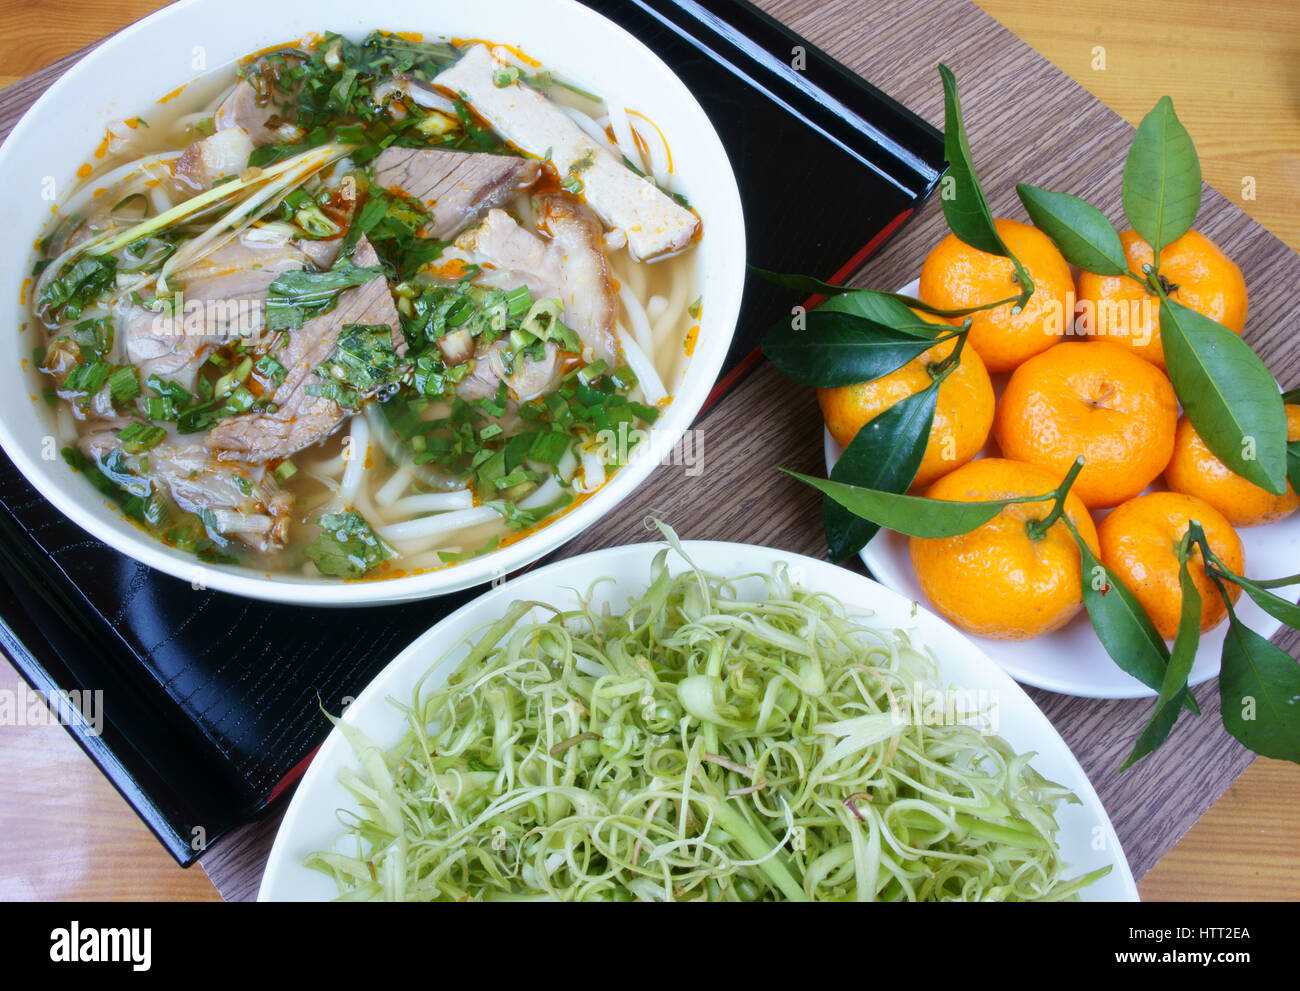 Stock Photo - Bun bo Hue is popular Vietnamese soup contain rice vermicelli (bun) and beef, this is delicious street food or meal, salty noodle bowl with vegetables